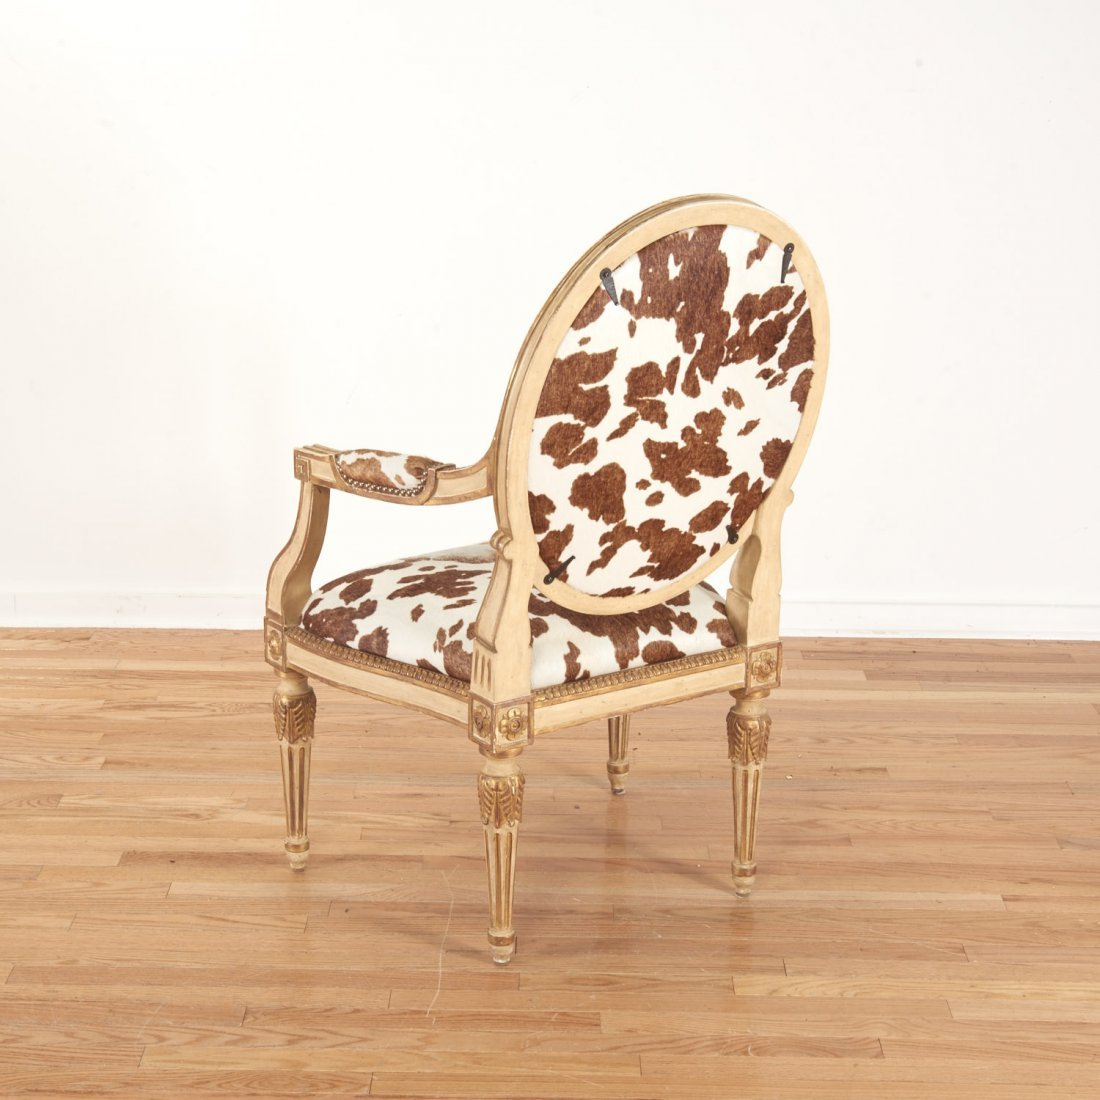 Louis XVI style cowhide fauteuil by Dennis & Leen - 6